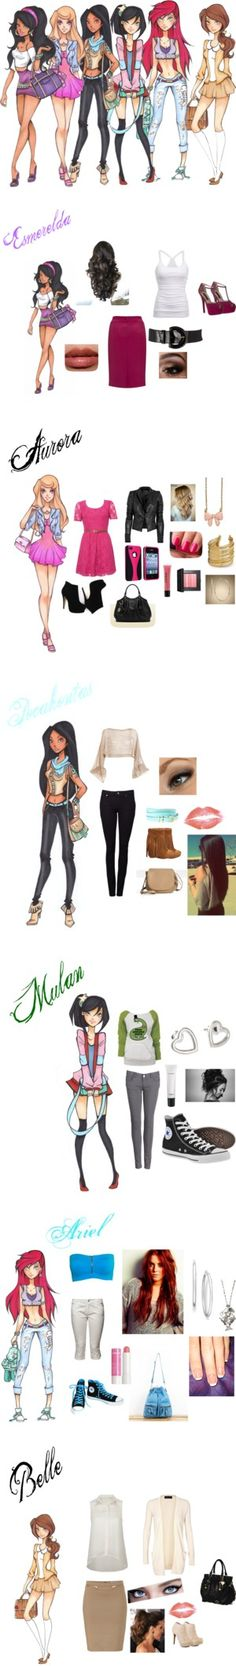 """""""Disney princess all grown up"""" by litmaria on Polyvore"""